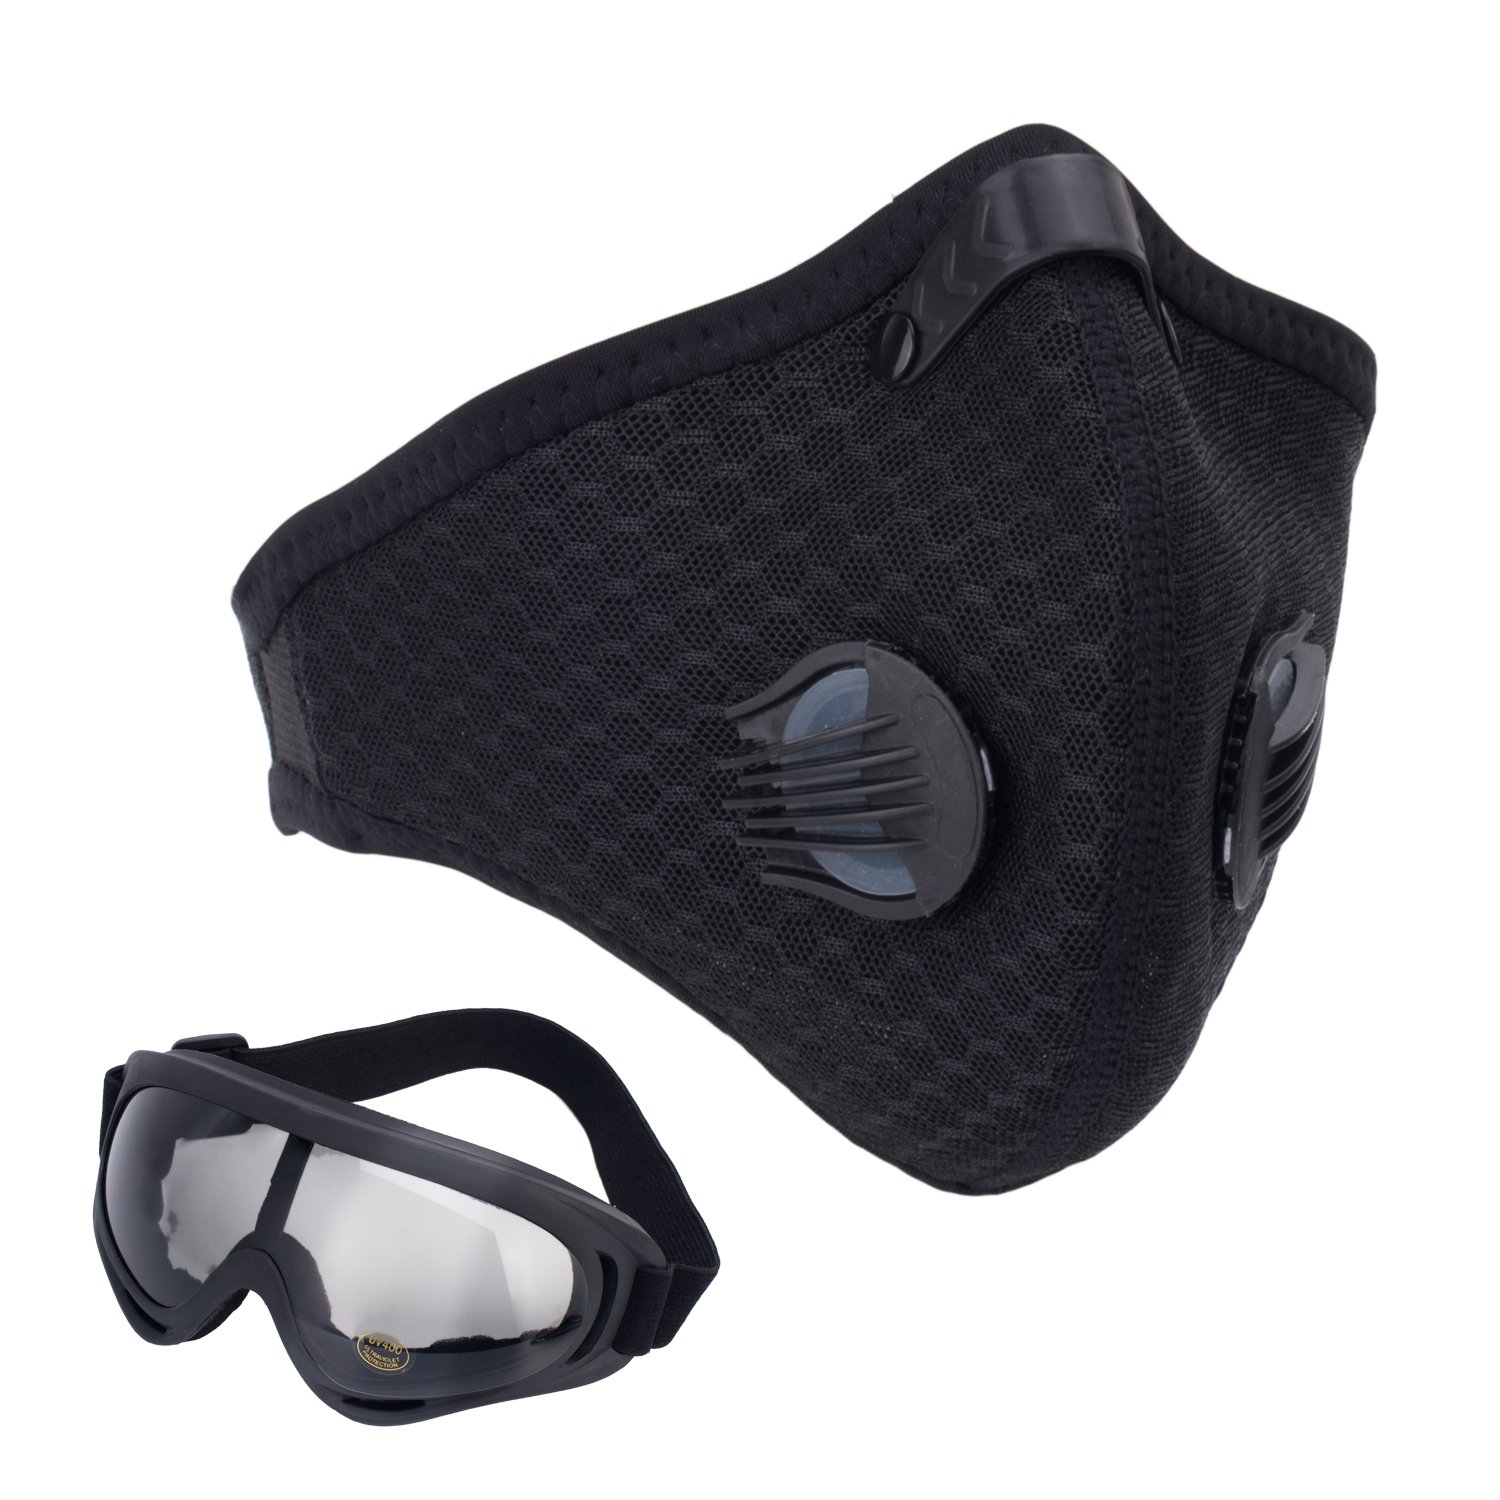 Activated Carbon Dust Mask Motorcycling Goggle Pack of 2 Dustproof Face Mask Filtration Exhaust Gas Anti Pollen Allergy PM2.5 Dust Mask Filter Ski Glass for Motorcycling Cycling Running